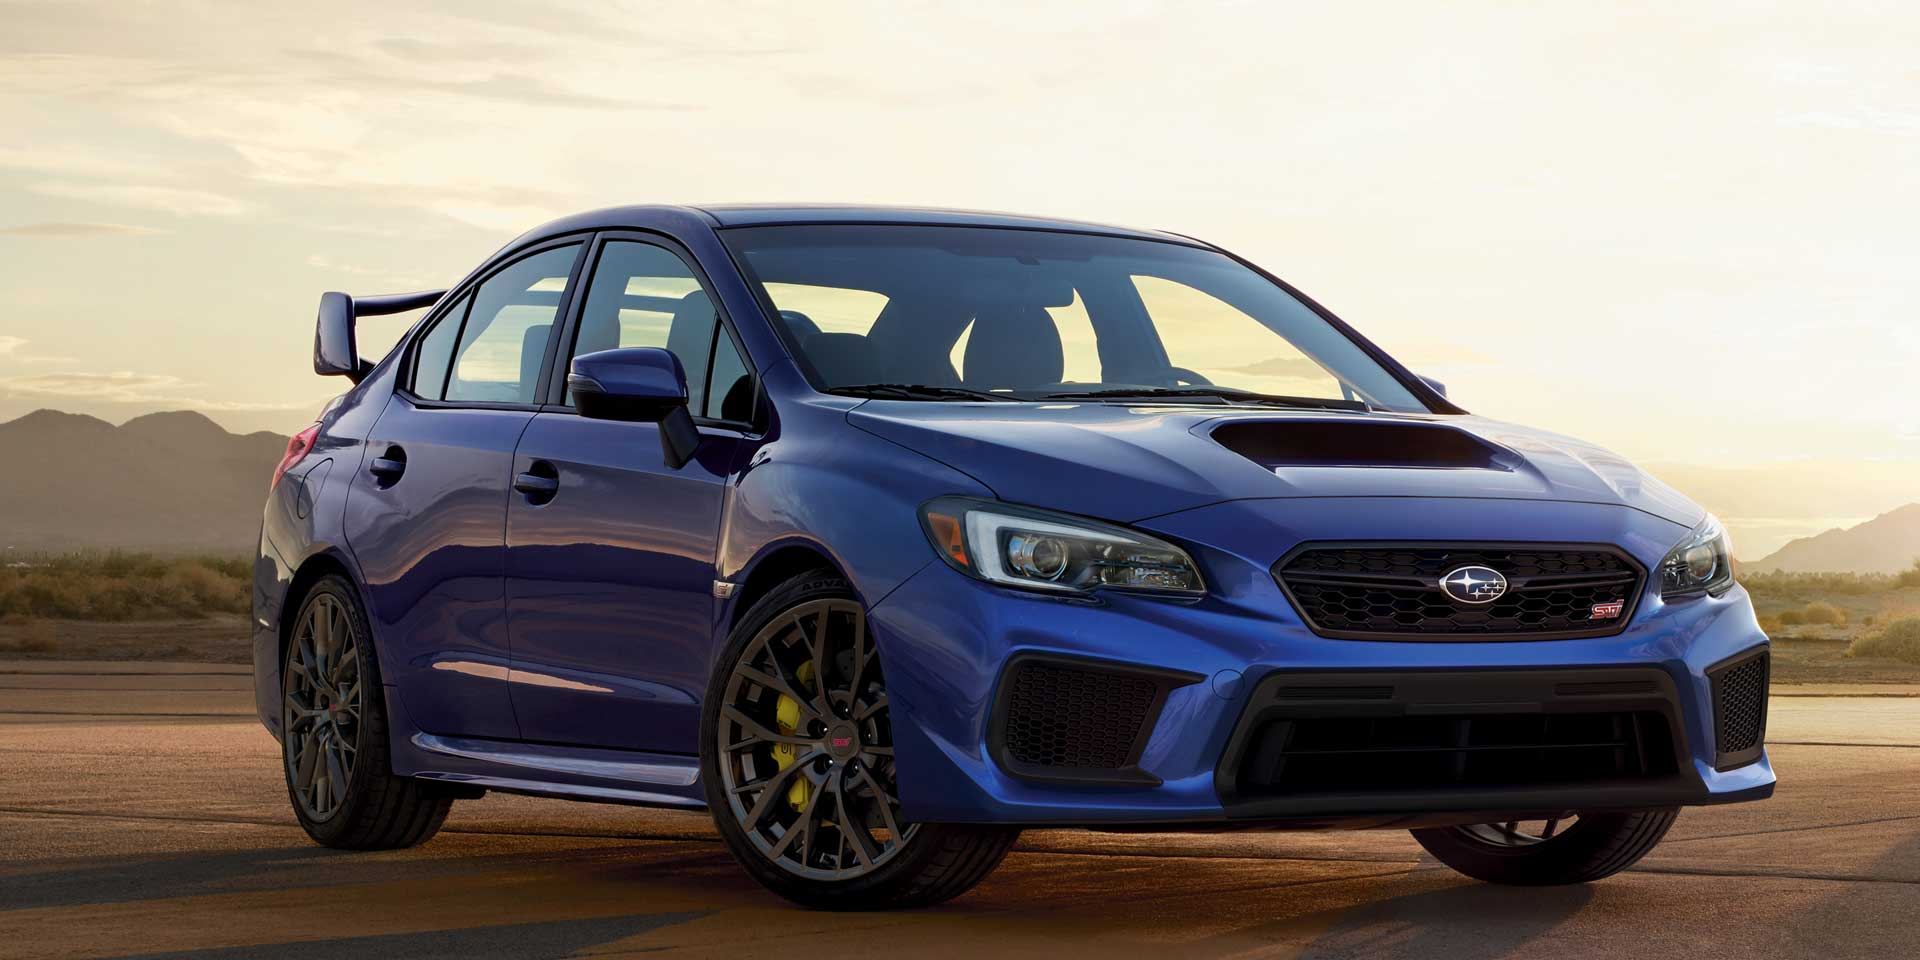 2019 Subaru Wrx Vehicles On Display Chicago Auto Show